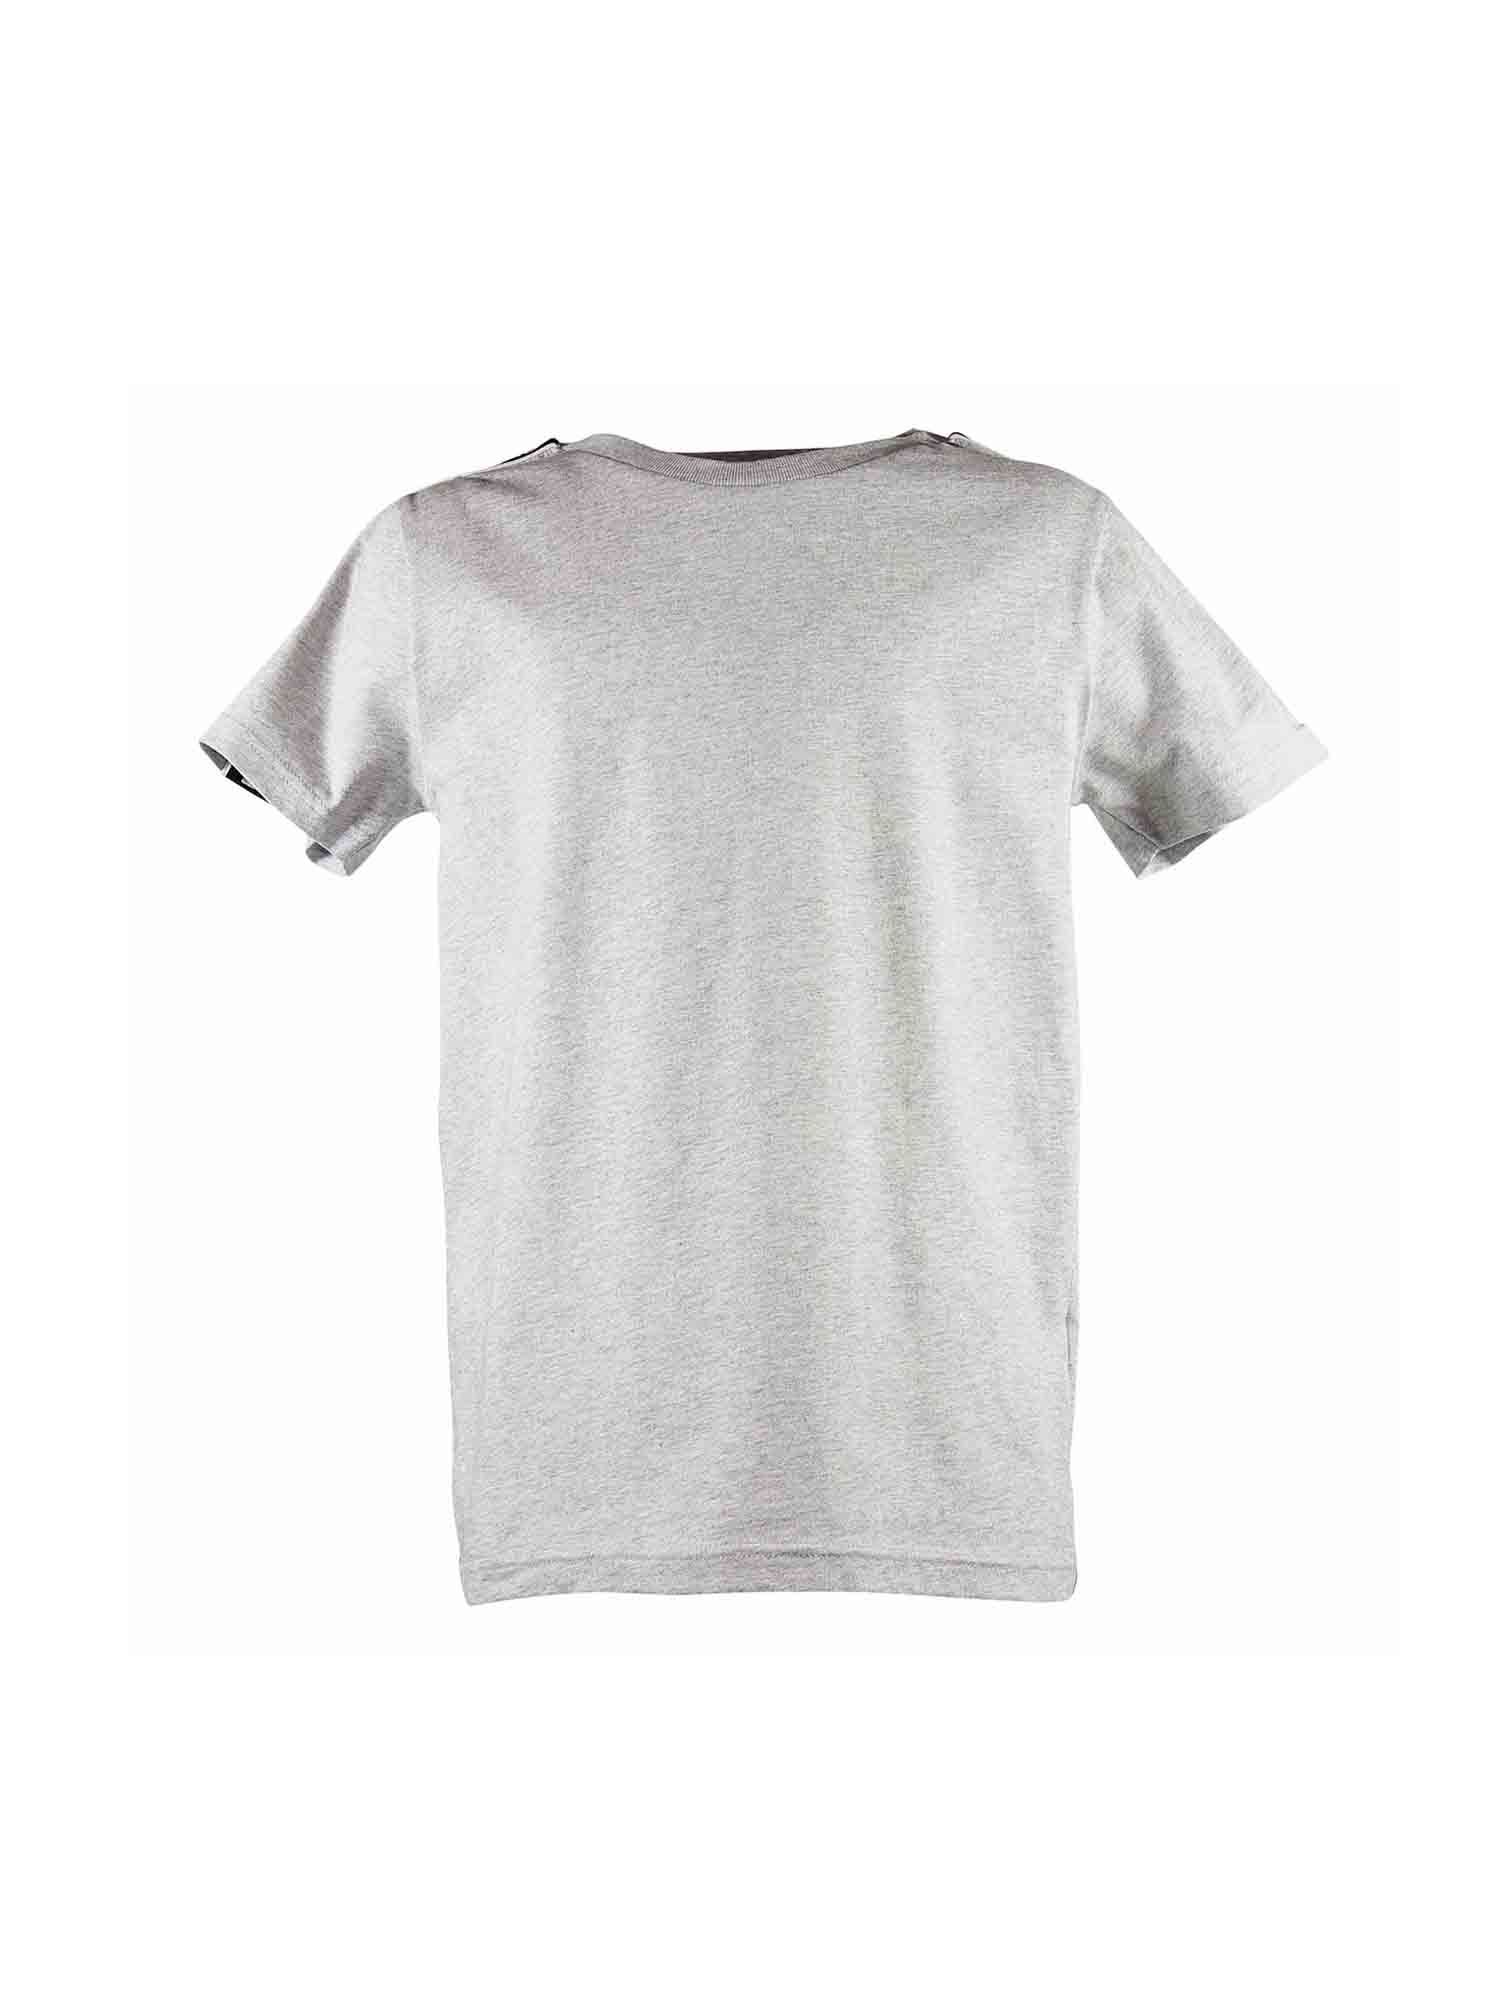 Givenchy Kids' Branded T-shirt In Melange Grey